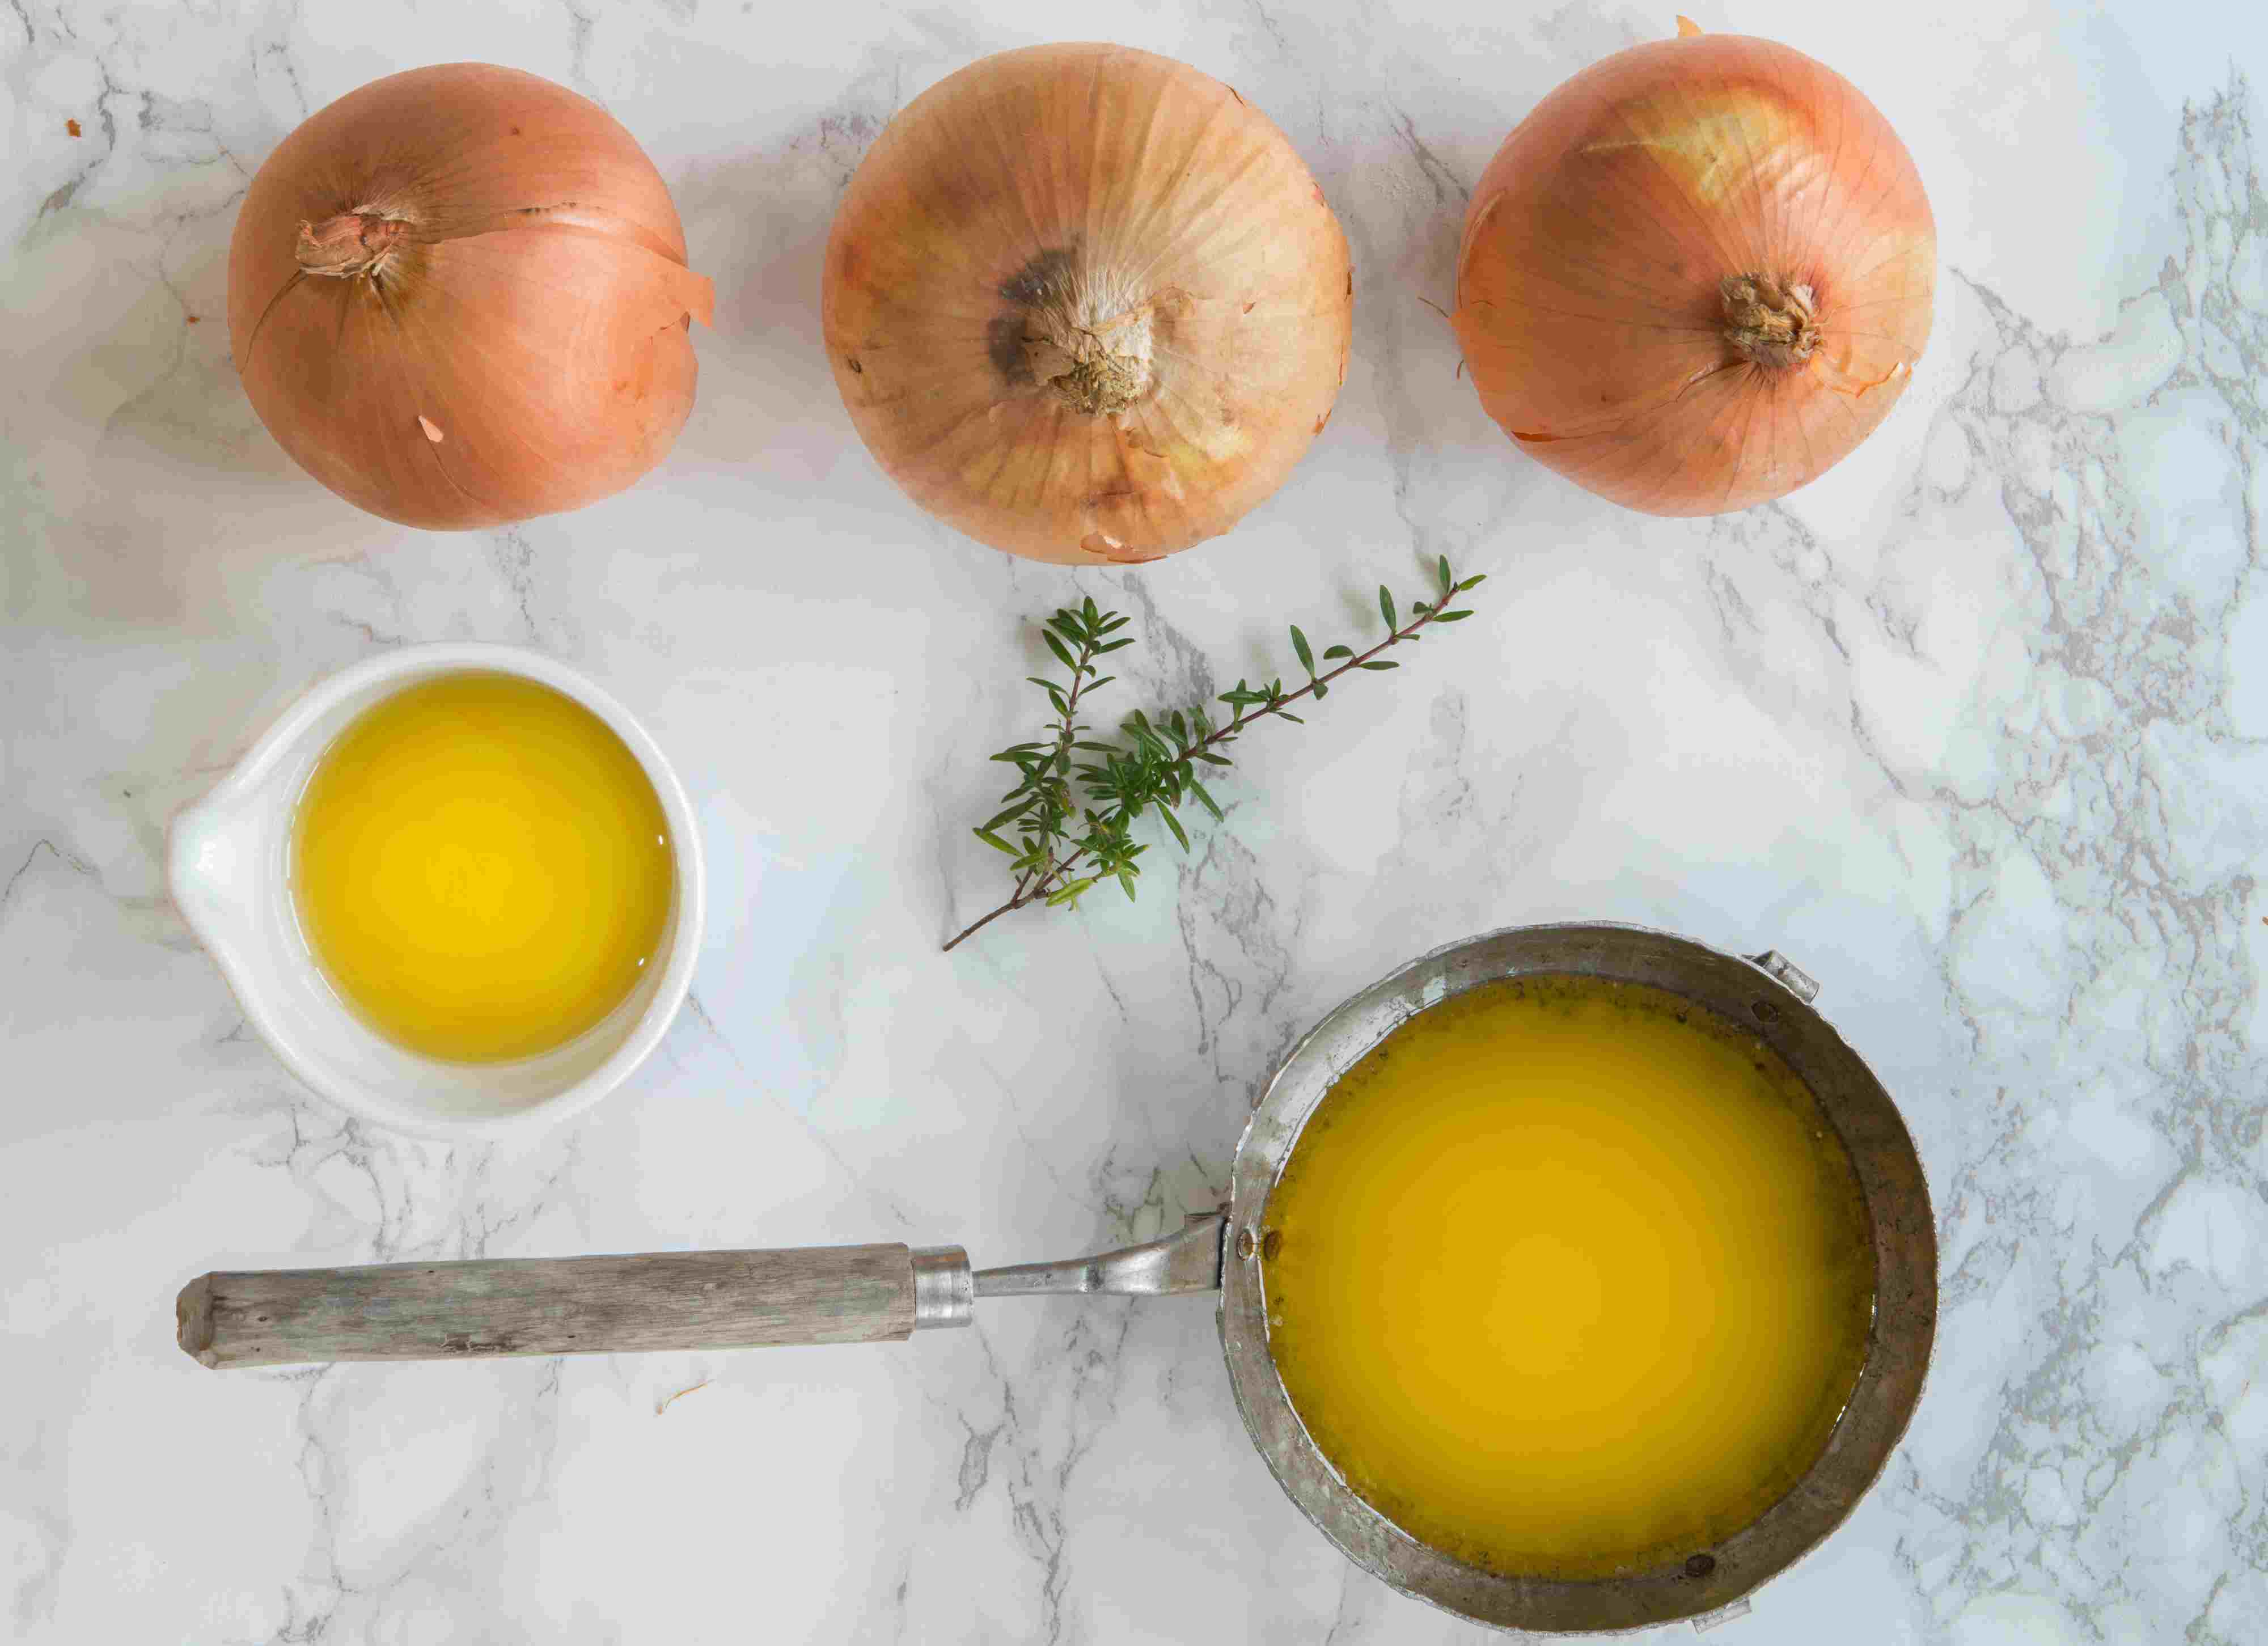 Caramelized Onions Ingredients